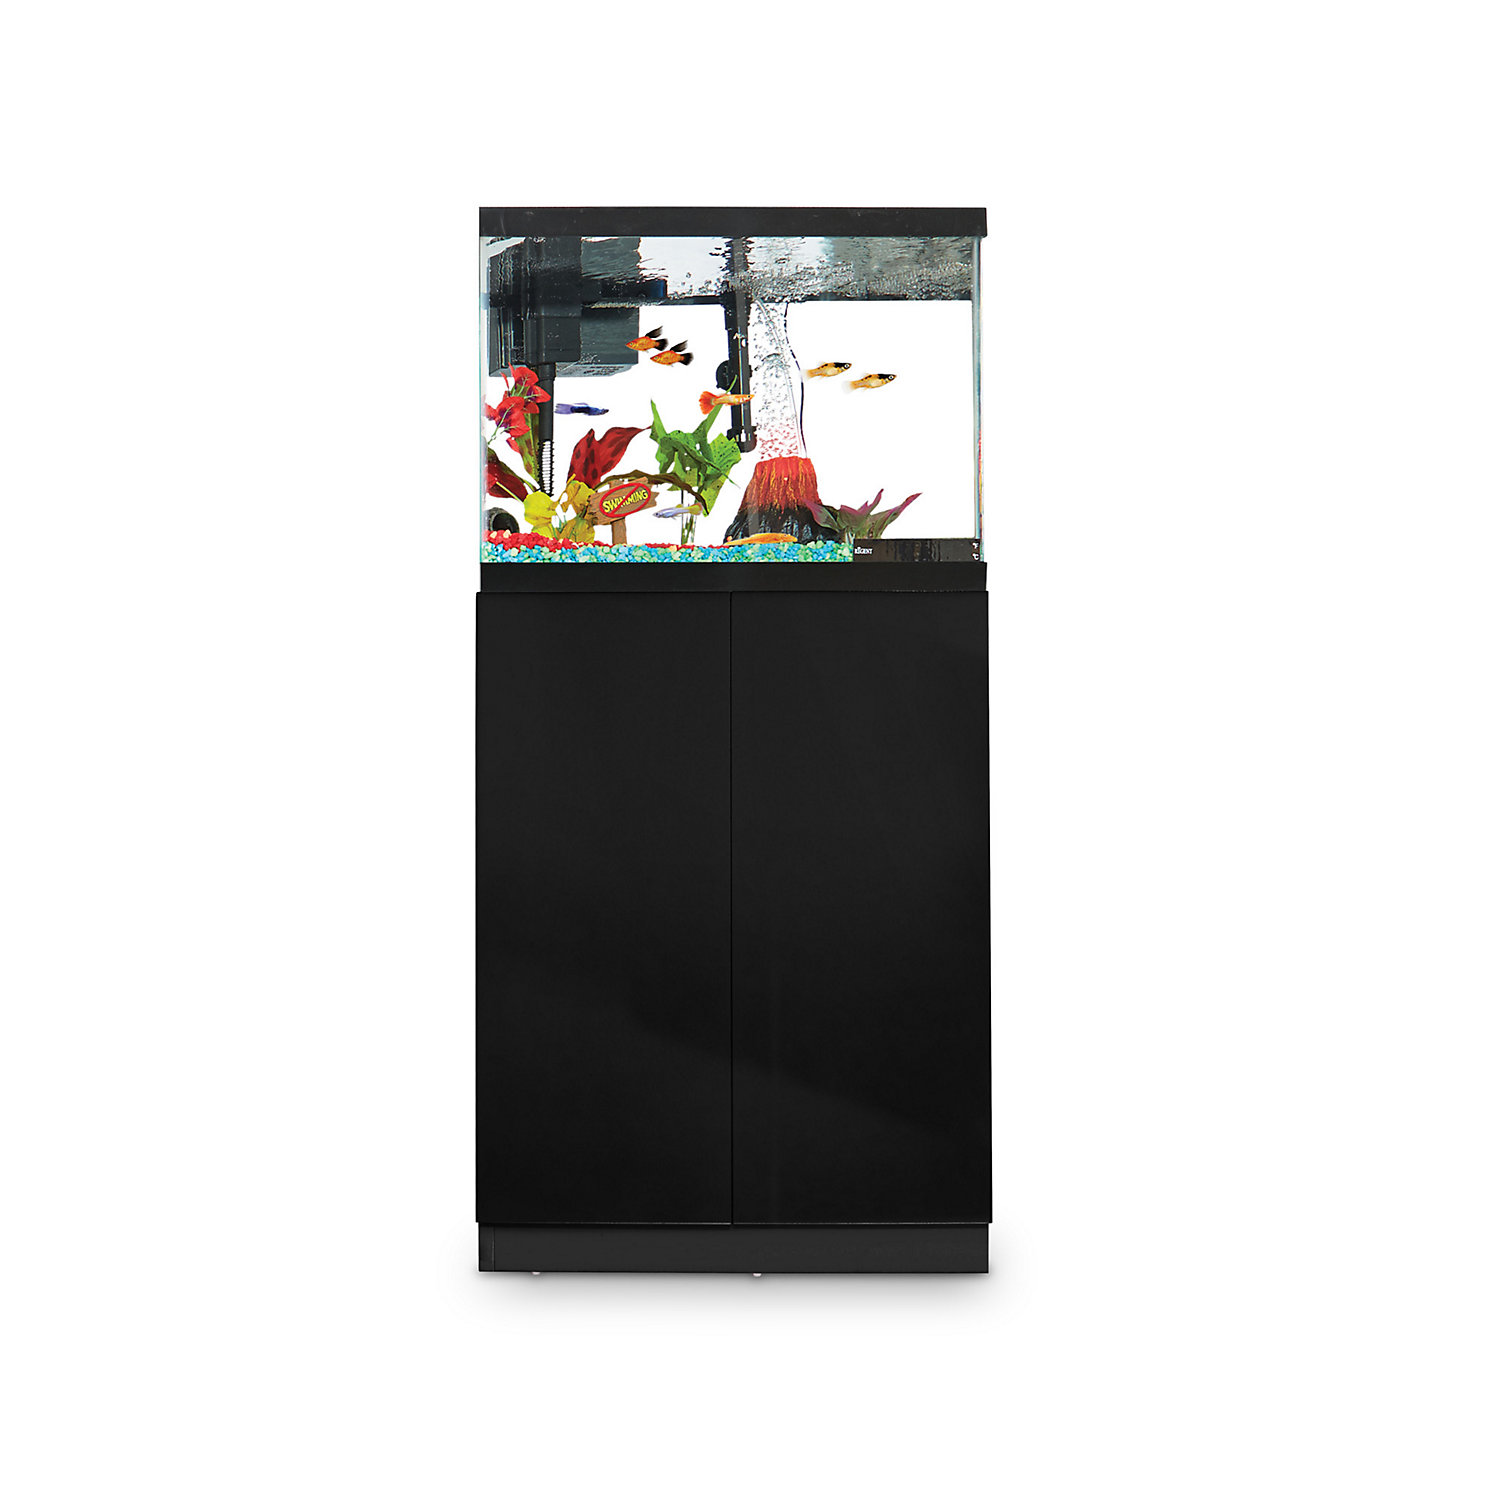 Imagitarium Black Gloss Fish Tank Stand Up to 20 Gal.